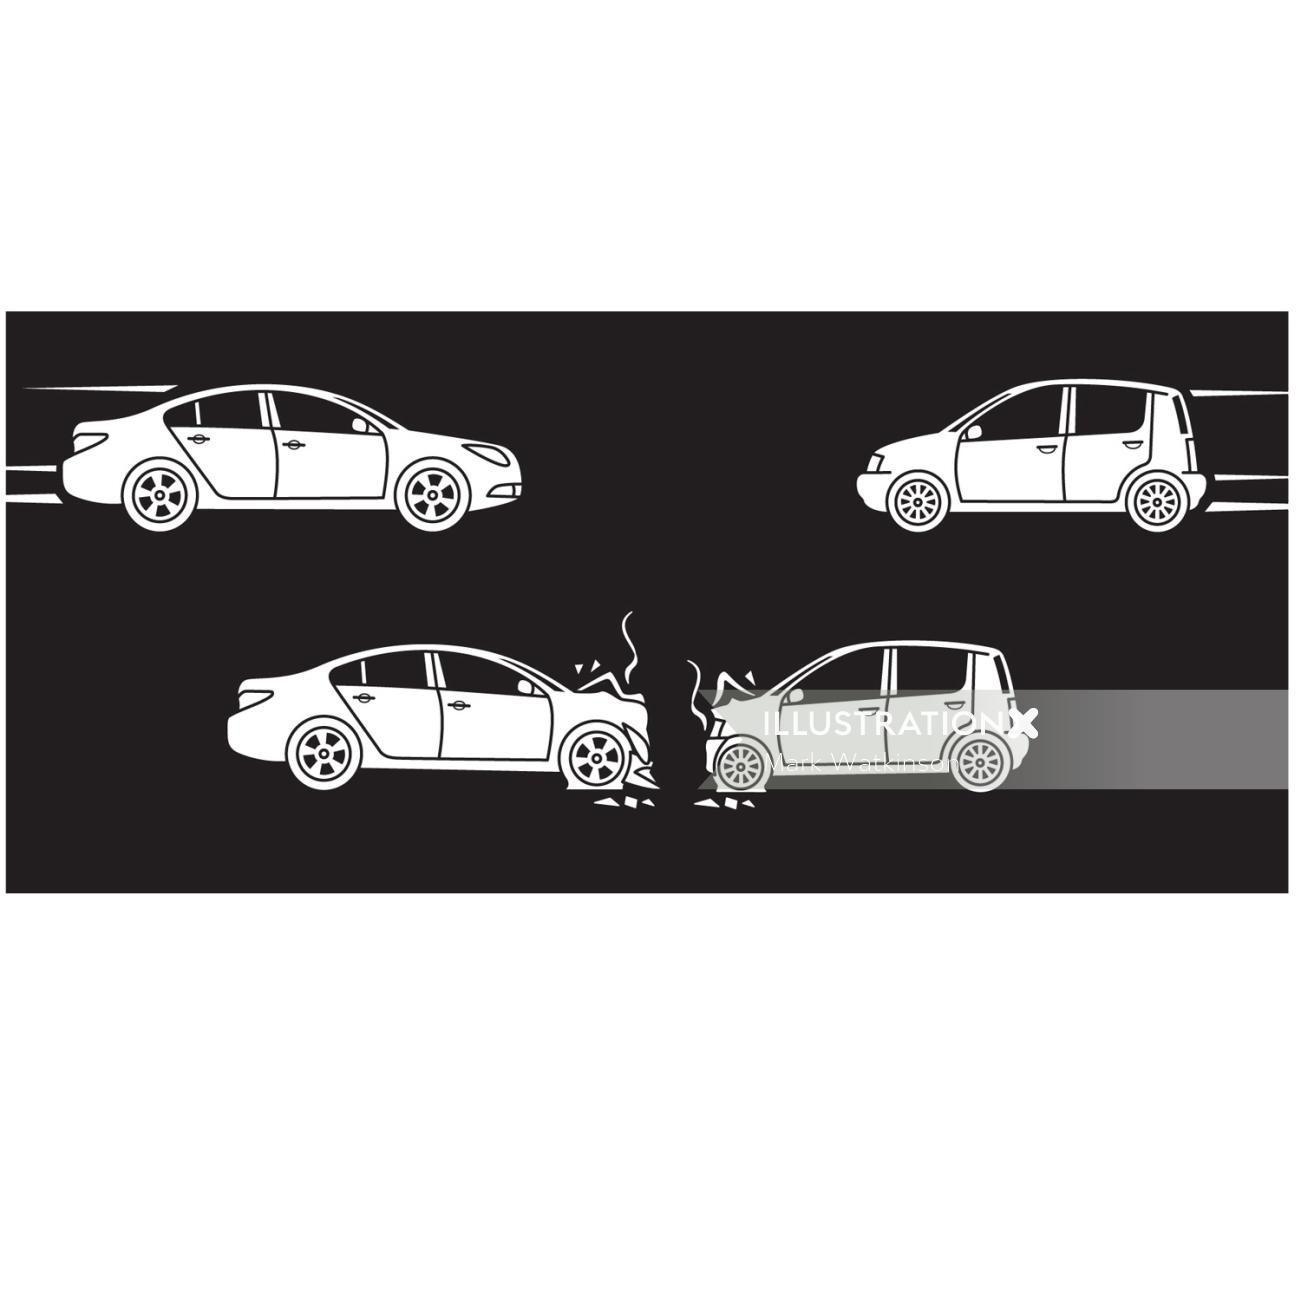 Crashed Cars transport graphic